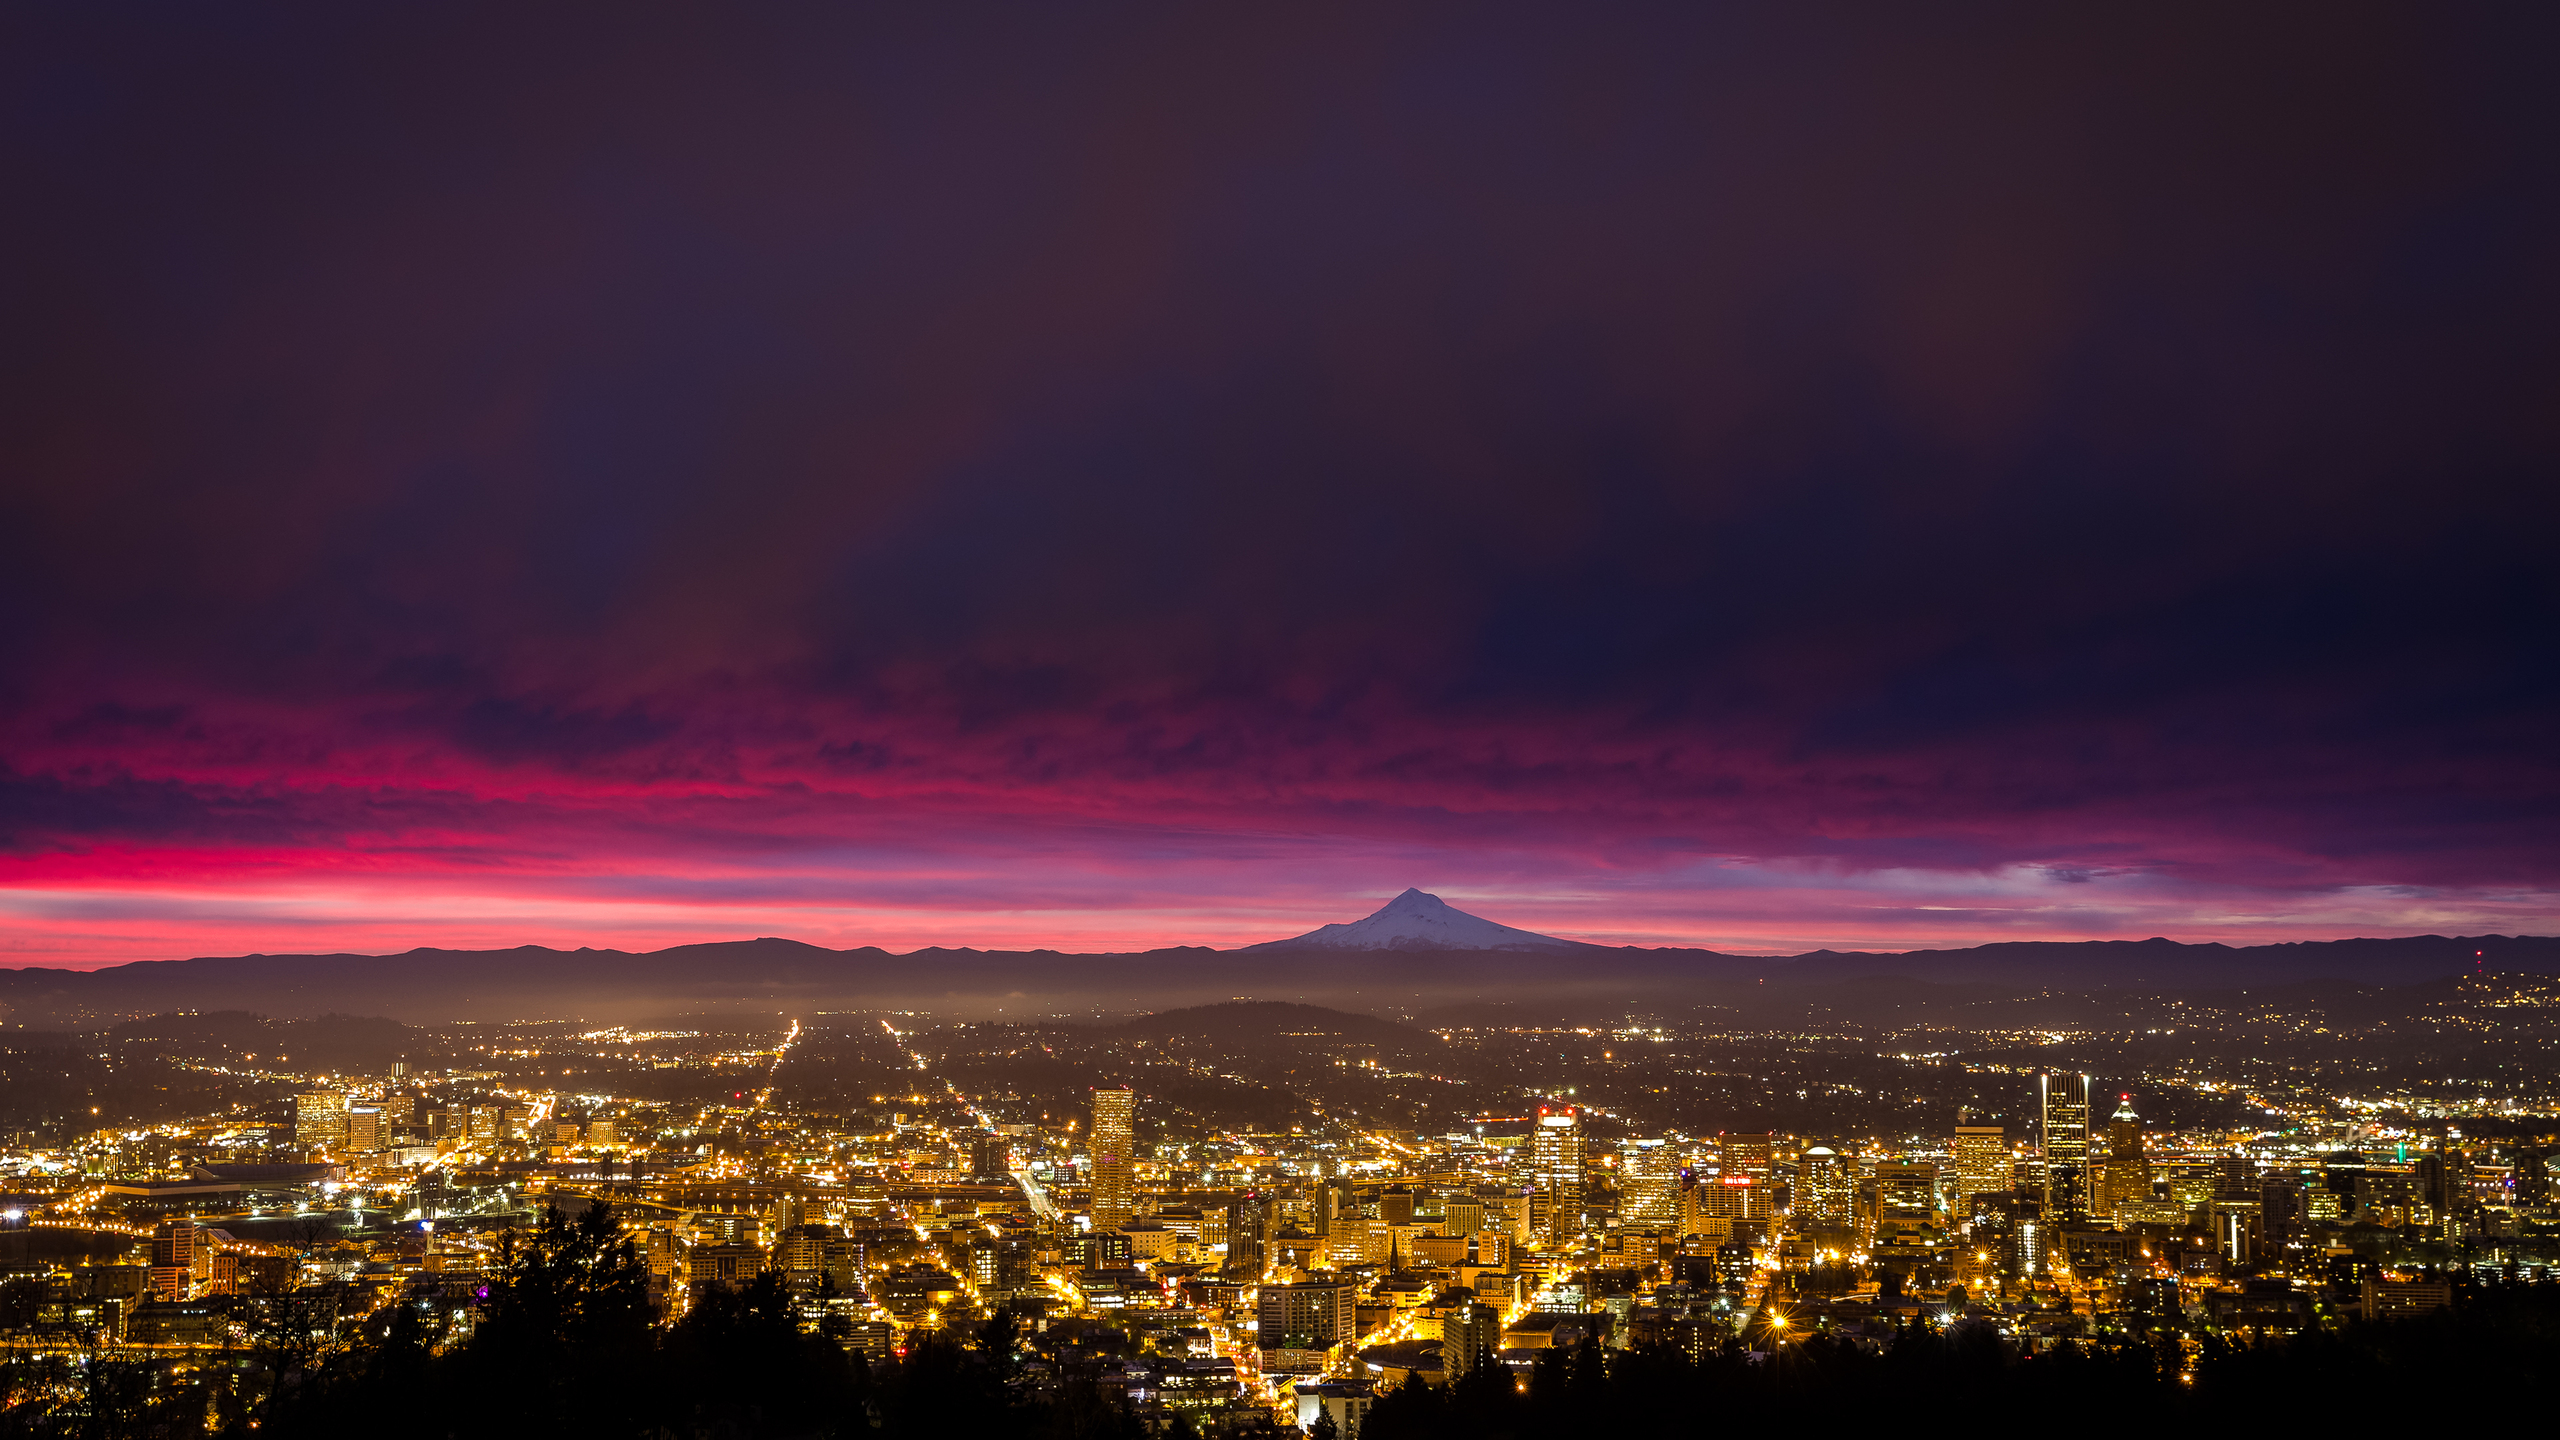 2560x1440 Portland Sunrise 1440P Resolution HD 4k Wallpapers Images